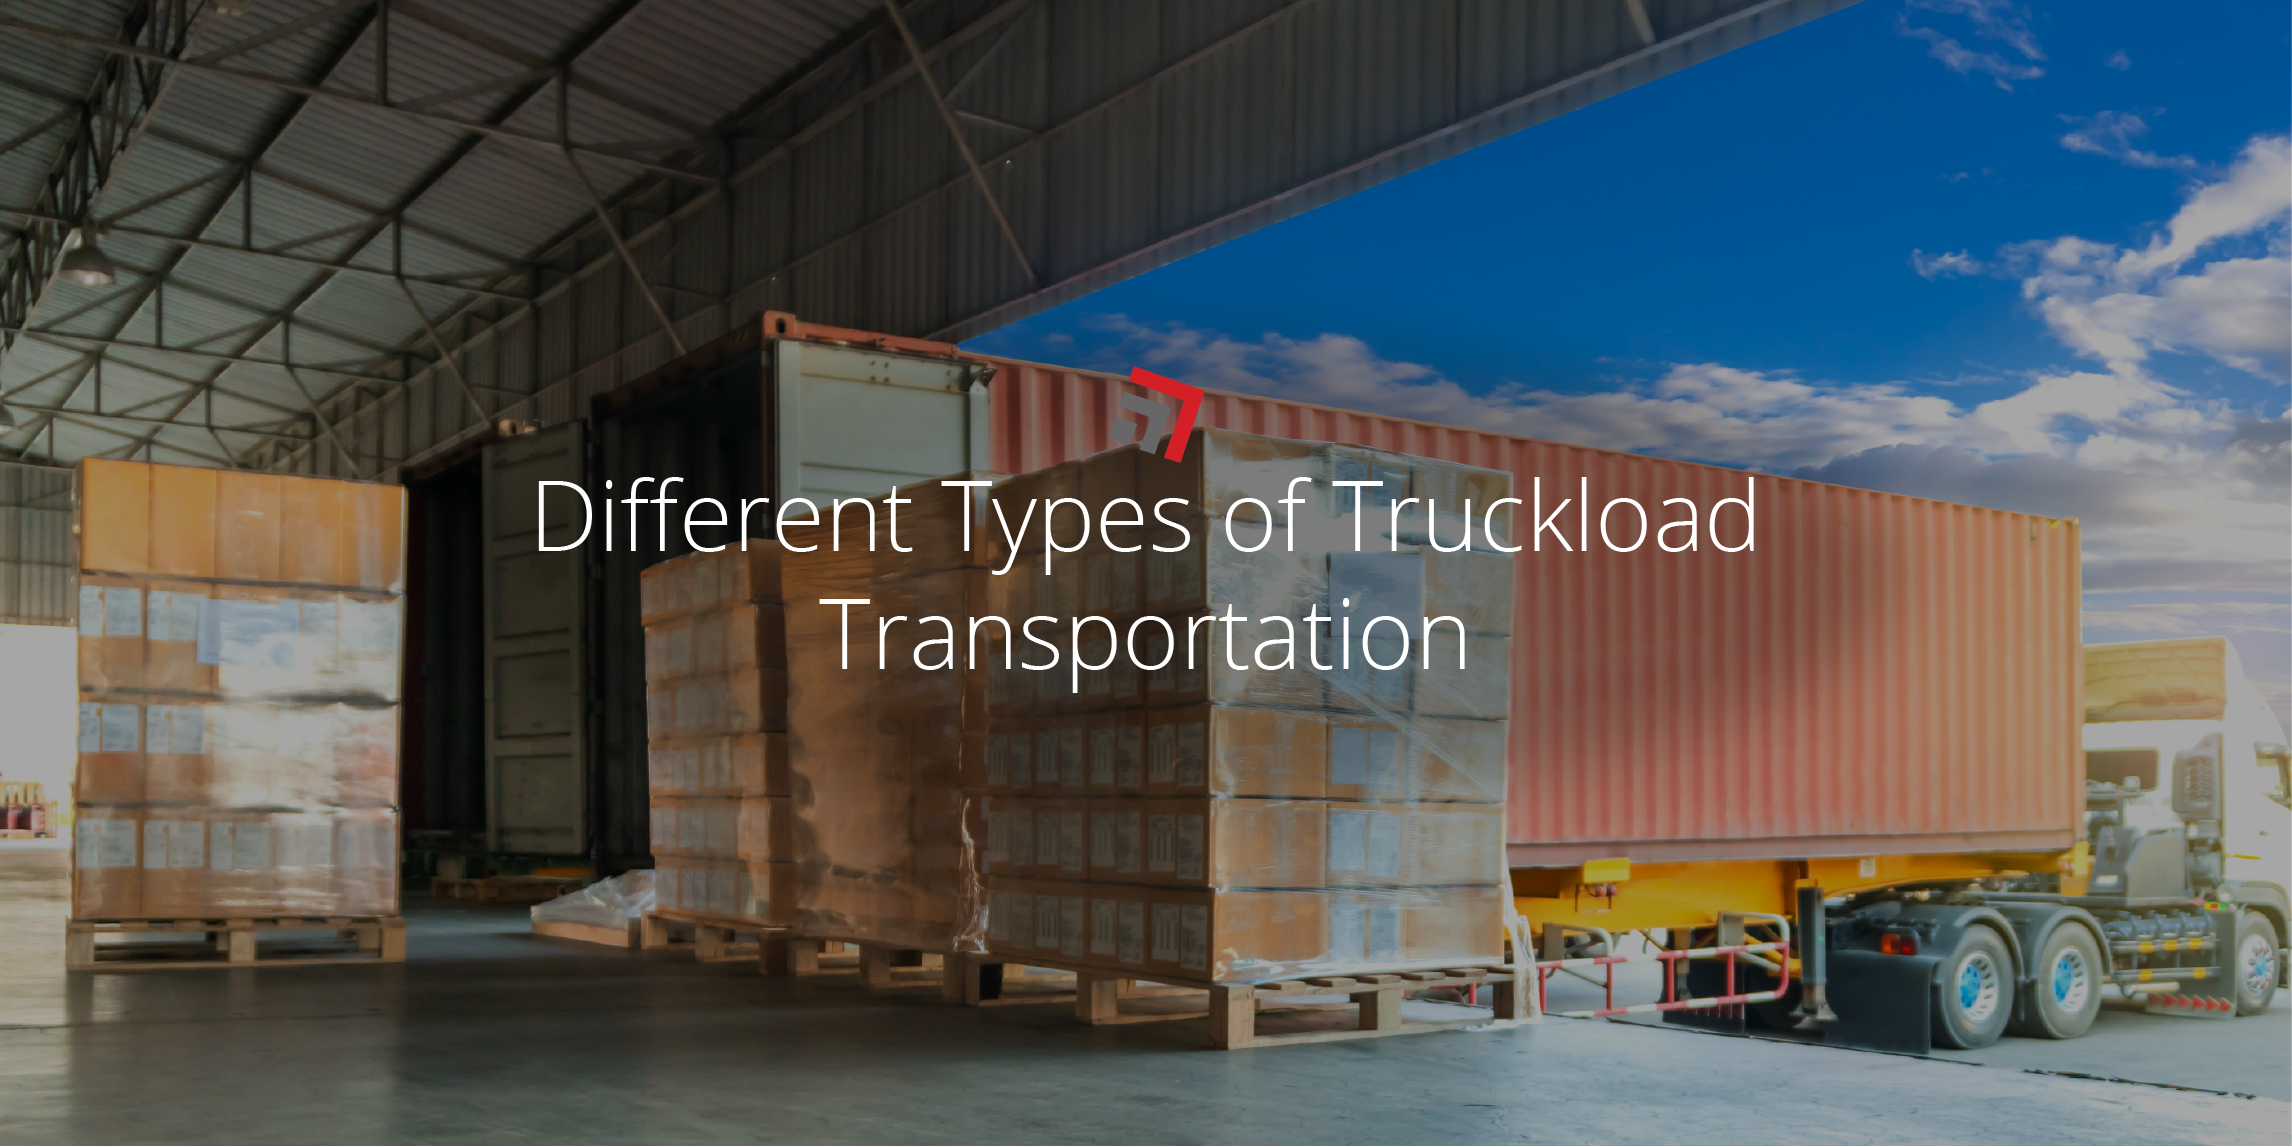 Different Types of Truckload Transportation